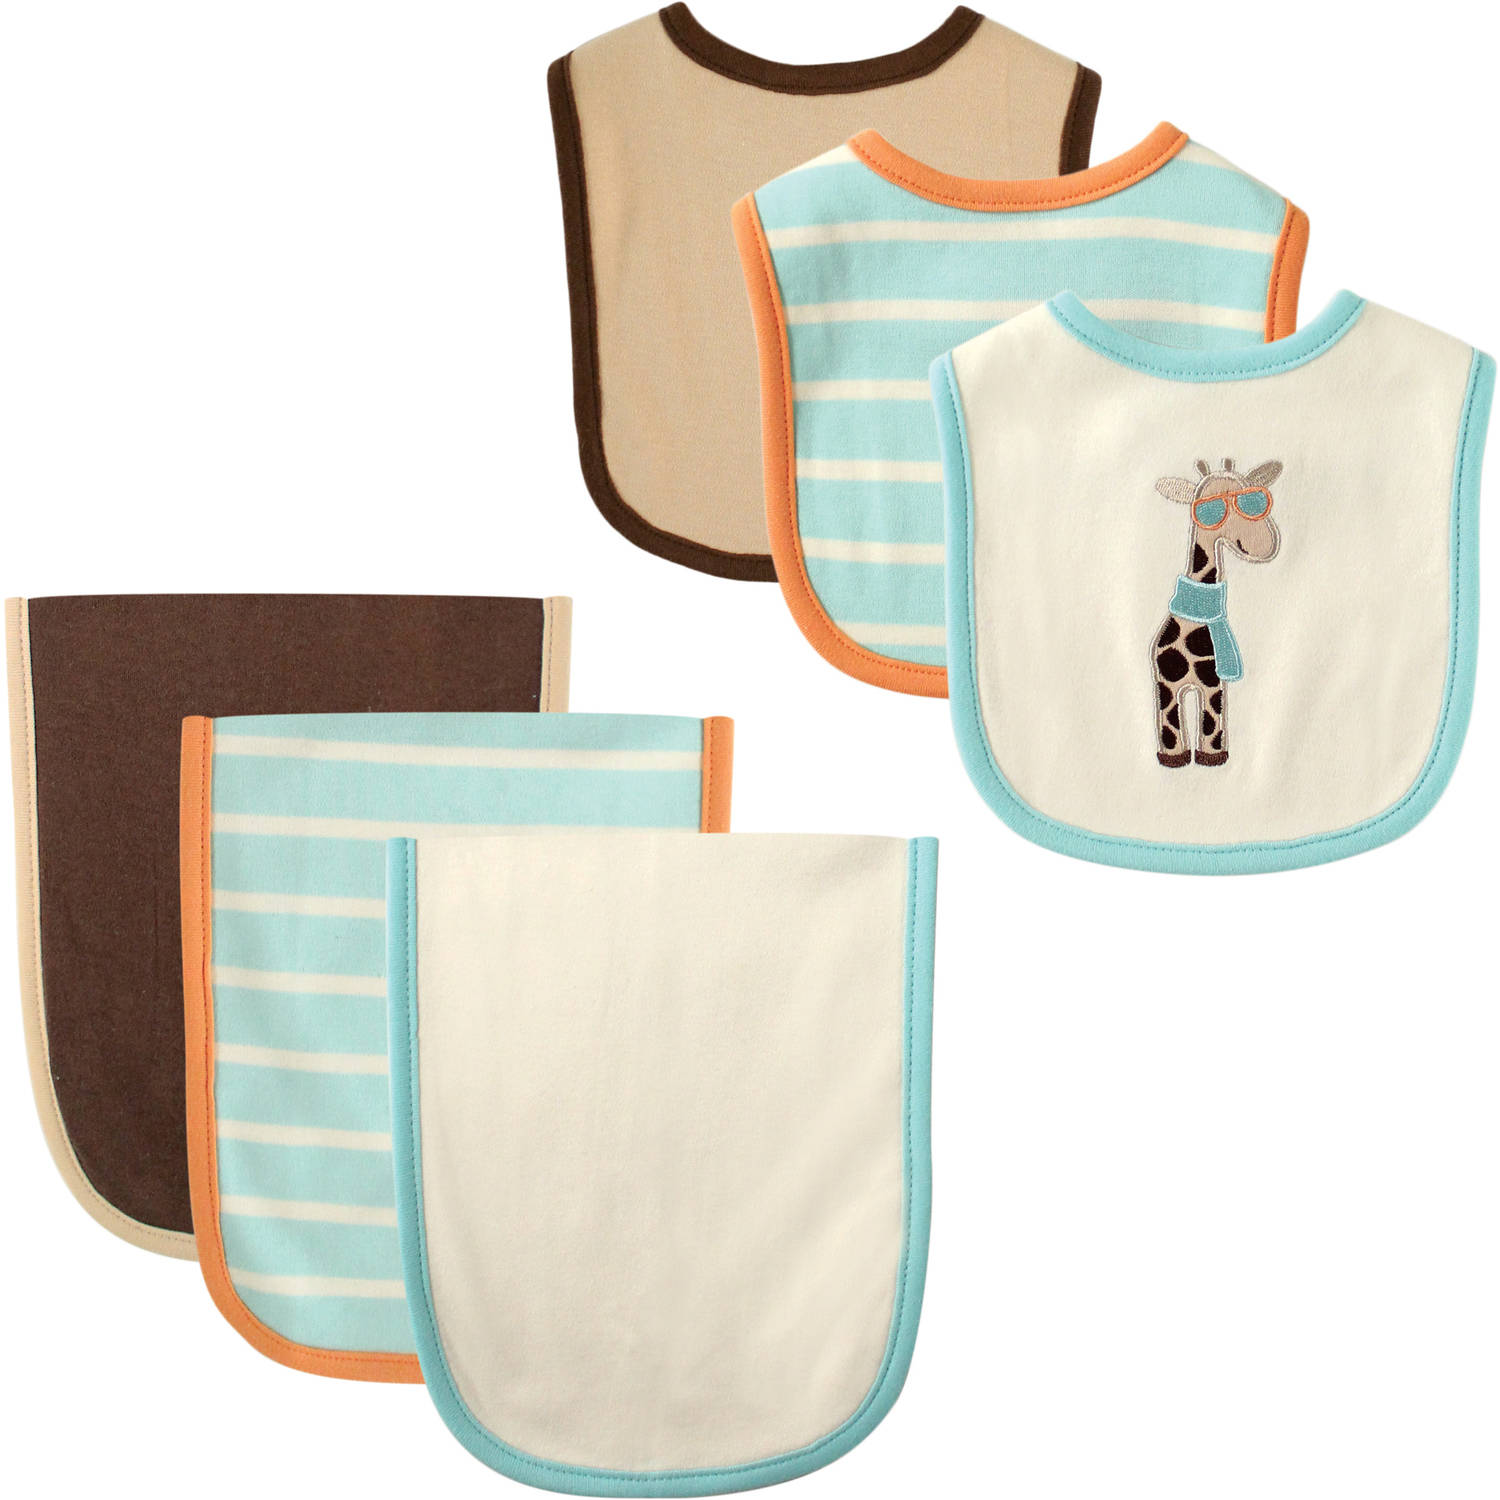 Hudson Baby Giraffe Bib and Burp Cloth, 6pk